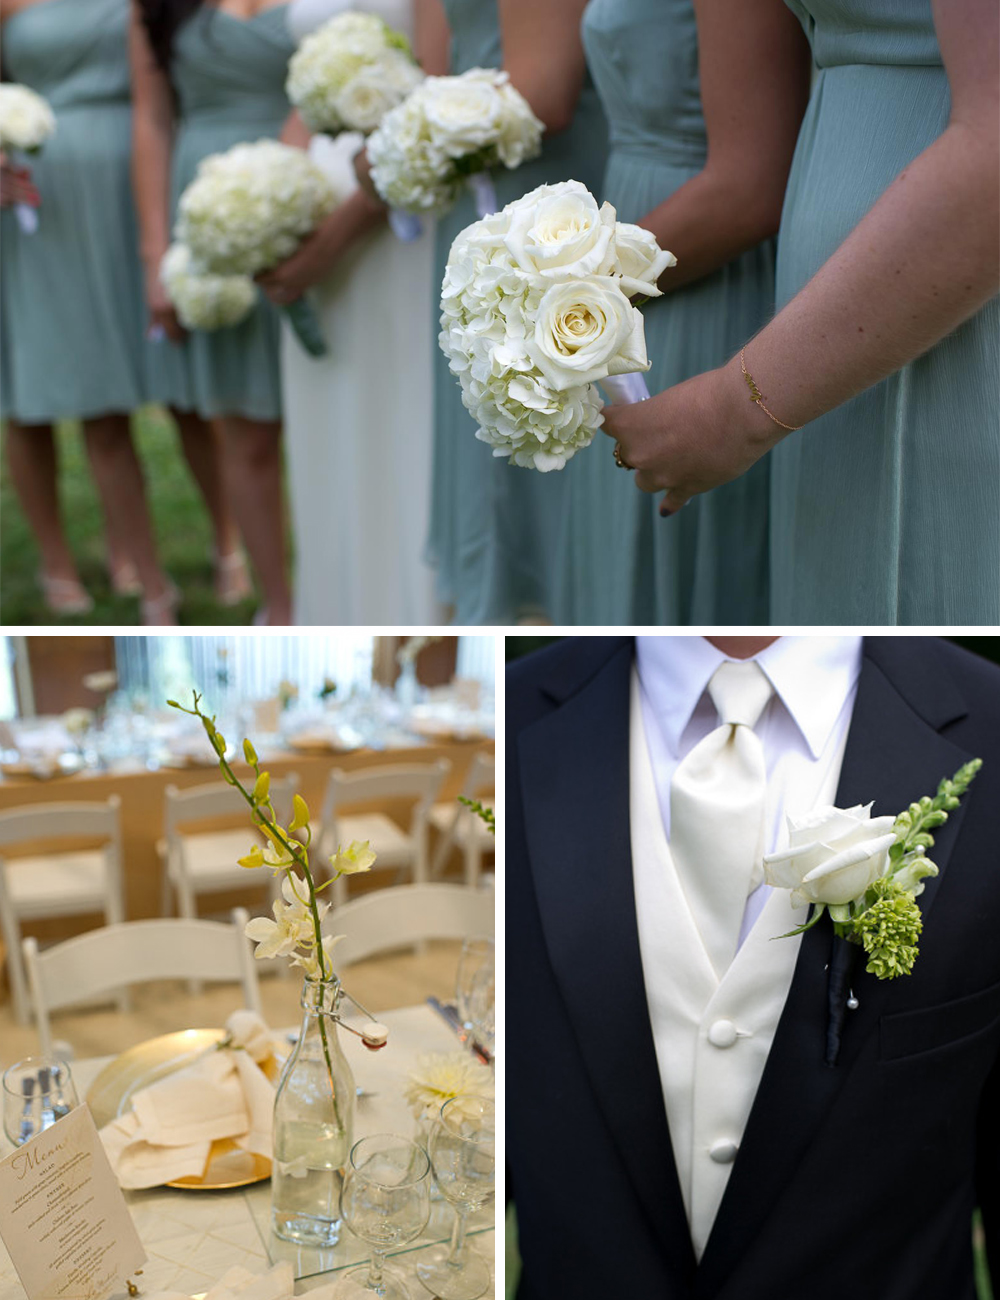 CONNETICUT JEWISH WEDDING FLOWERS